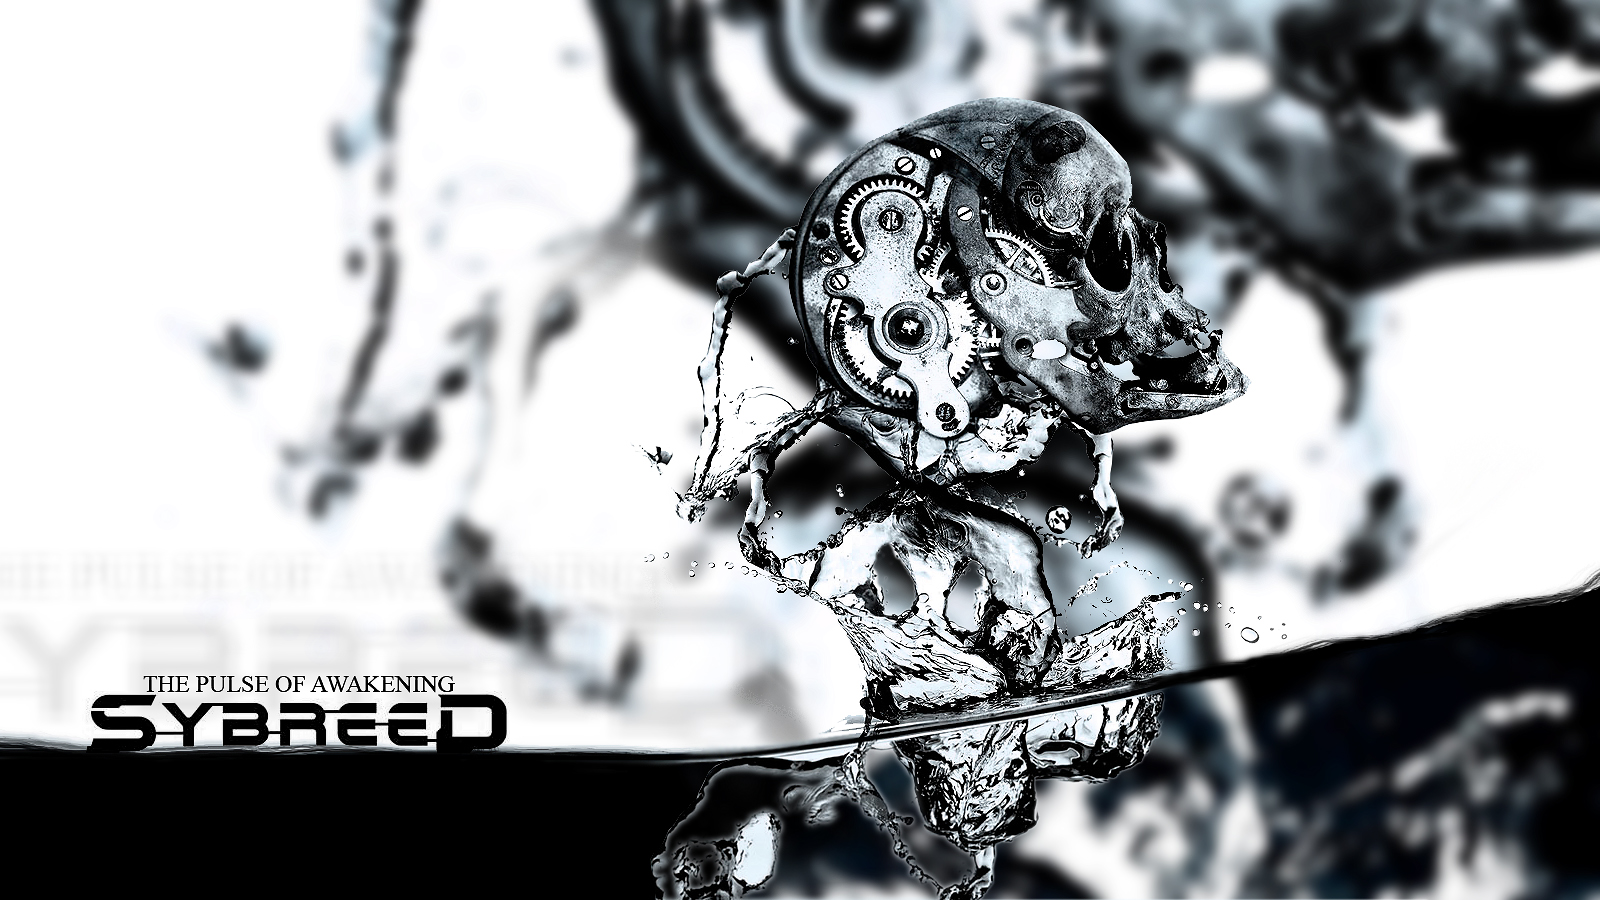 Sybreed Backgrounds, Compatible - PC, Mobile, Gadgets| 1600x900 px